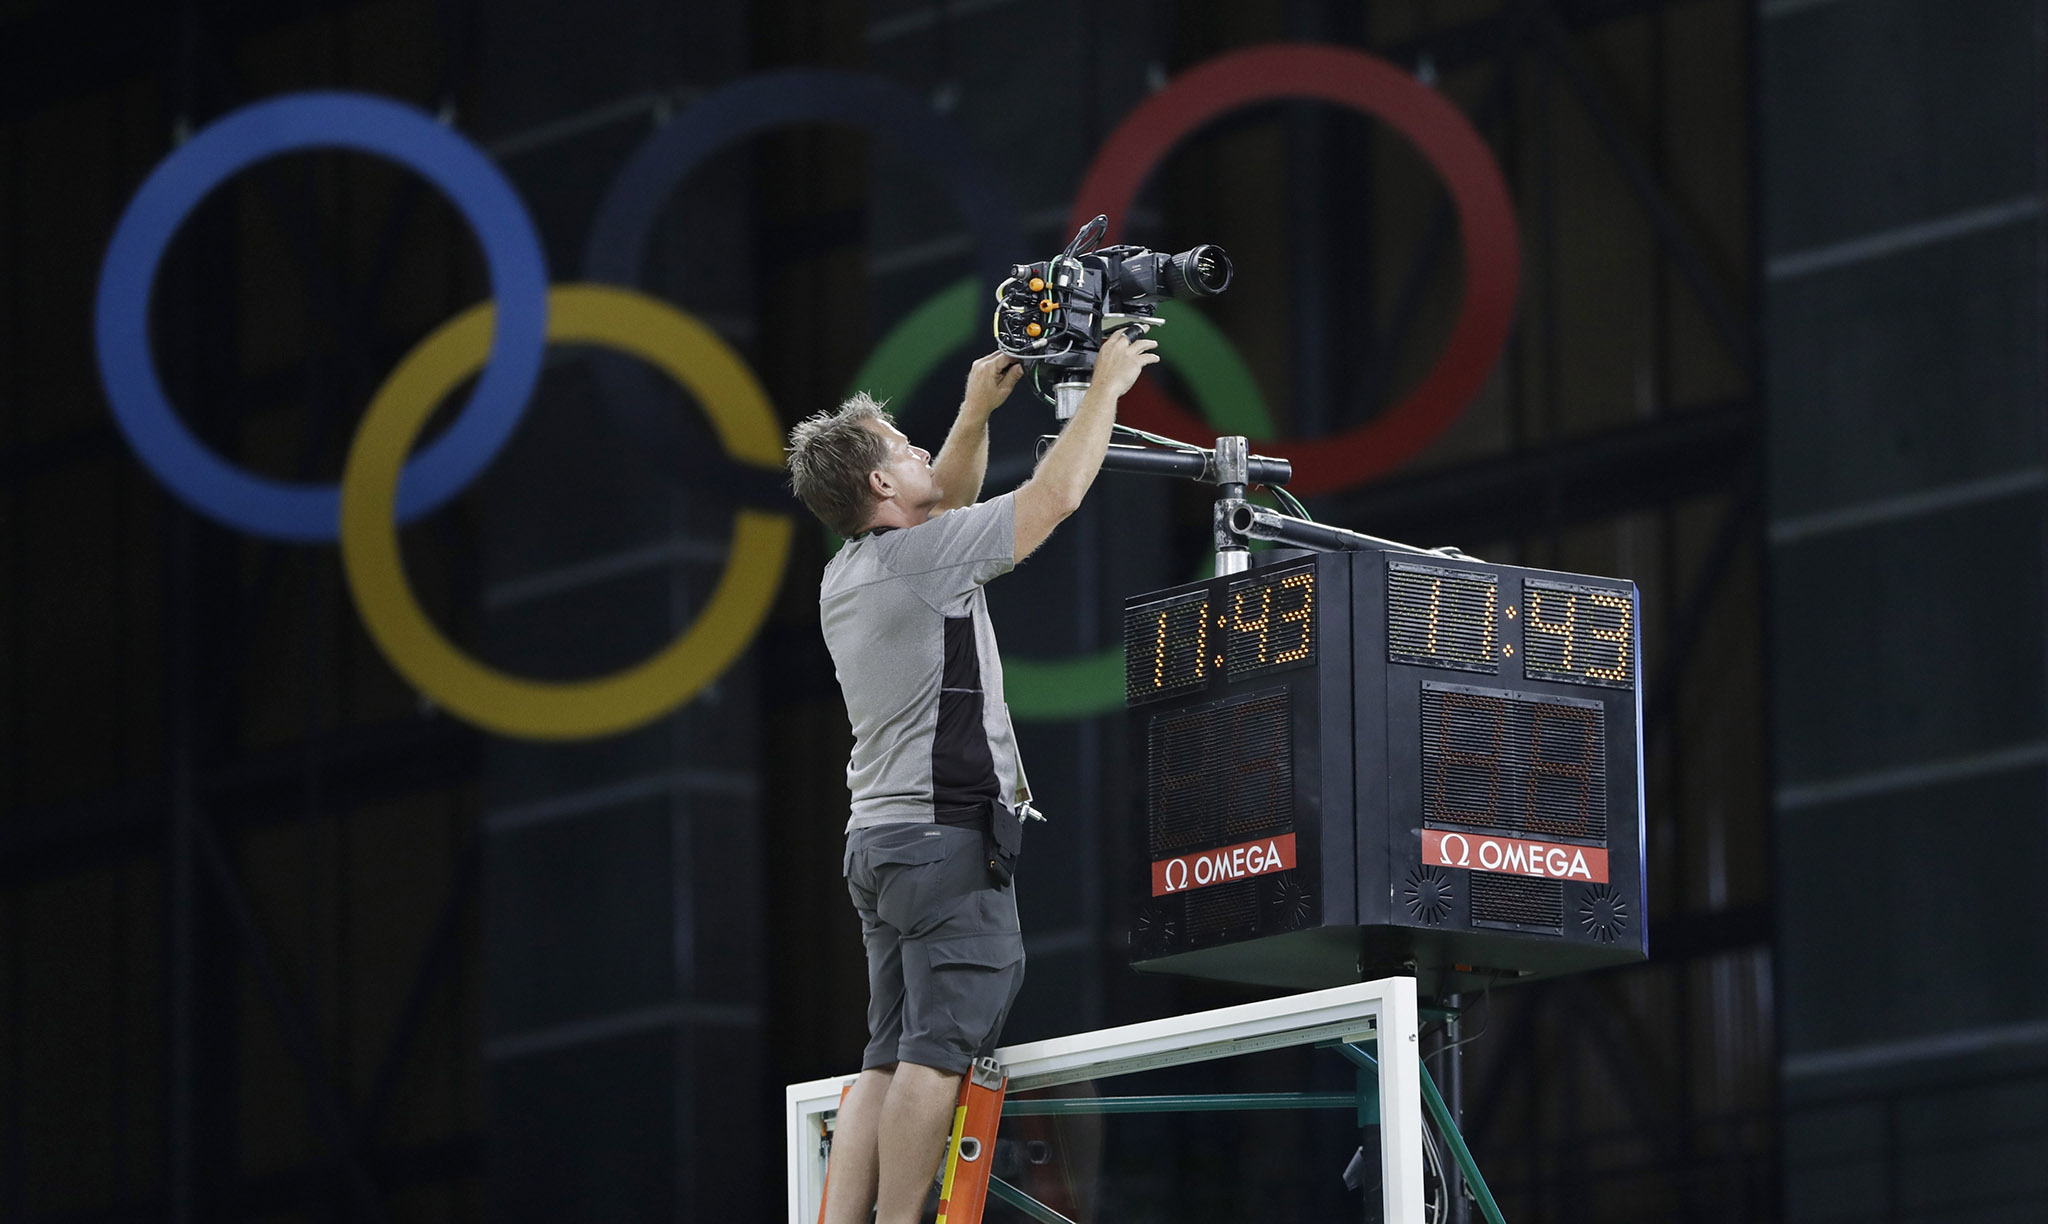 Technician Steven Heinz adjusts a remote camera during an off day for women's basketball at the Youth Center at the 2016 Summer Olympics in Rio de Janeiro, Brazil,